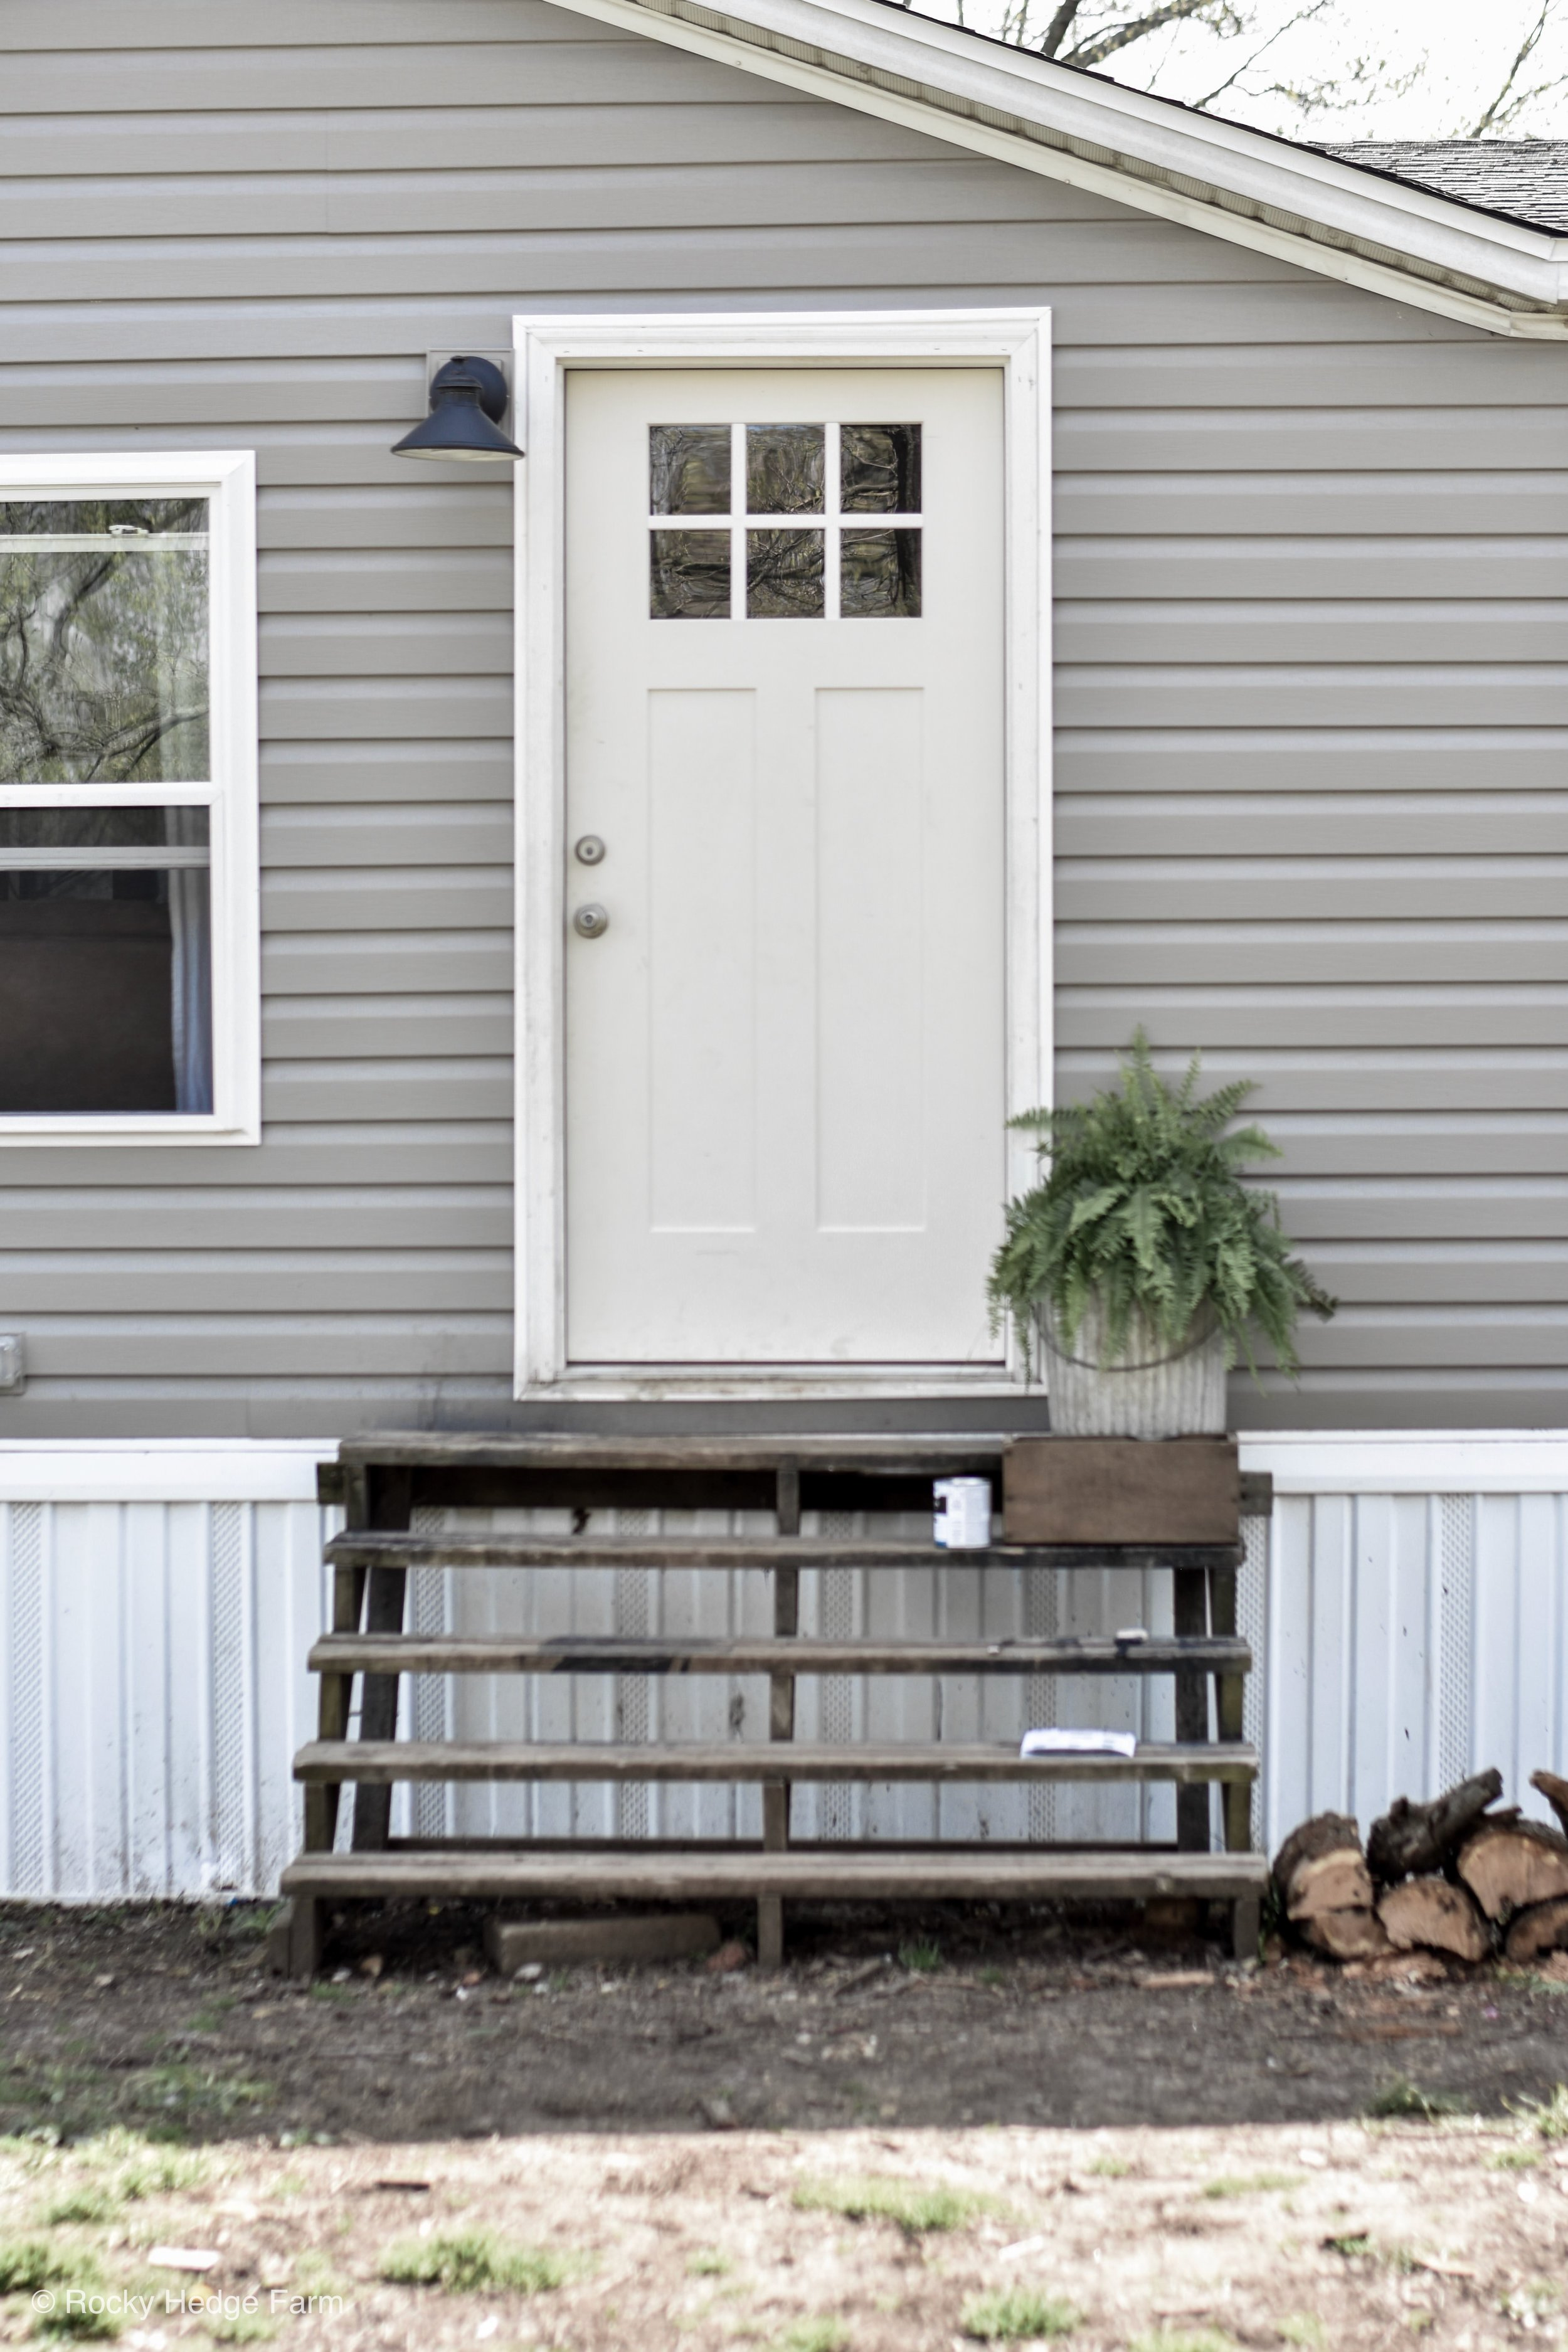 Double Wide Mobile Home Exterior Remodel - Gray Siding - White Door - White Trim | Rocky Hedge Farm